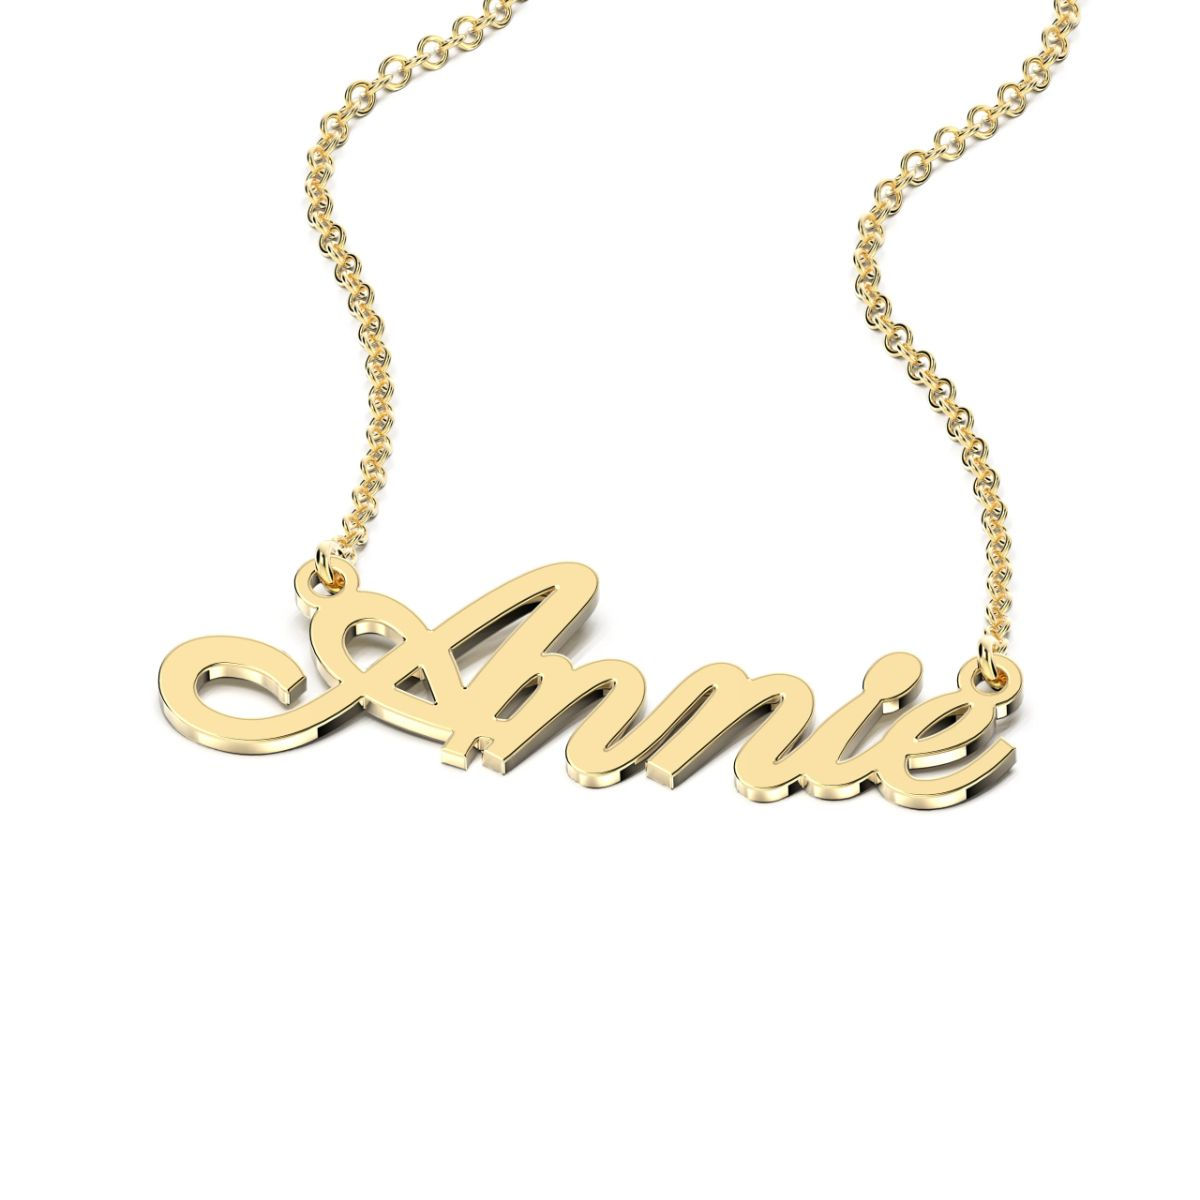 Parisienne Style Name Necklace